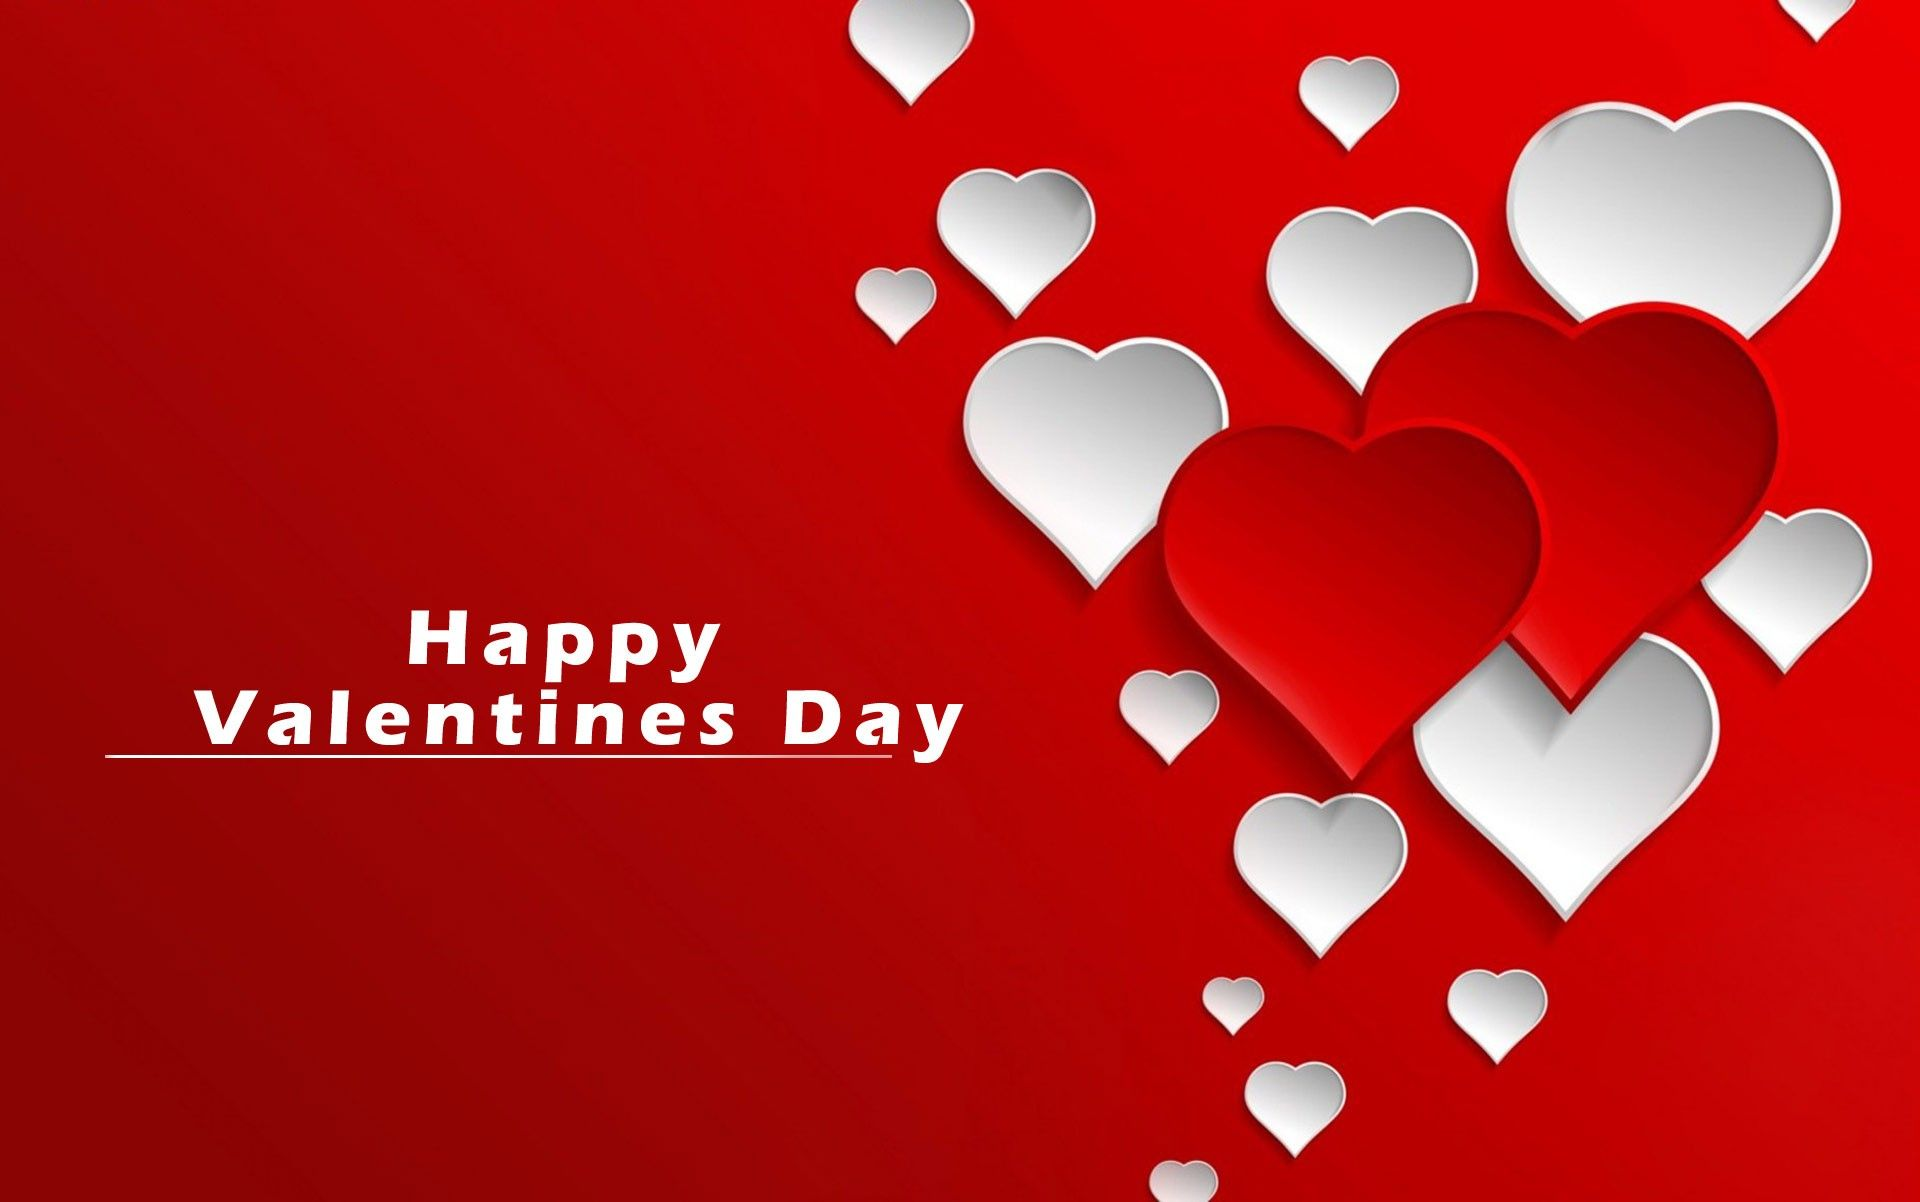 Happy Valentines Day Wallpapers Download Valentinesday Valentinesdayima Happy Valentines Day Pictures Happy Valentines Day Images Happy Valentines Day Wishes